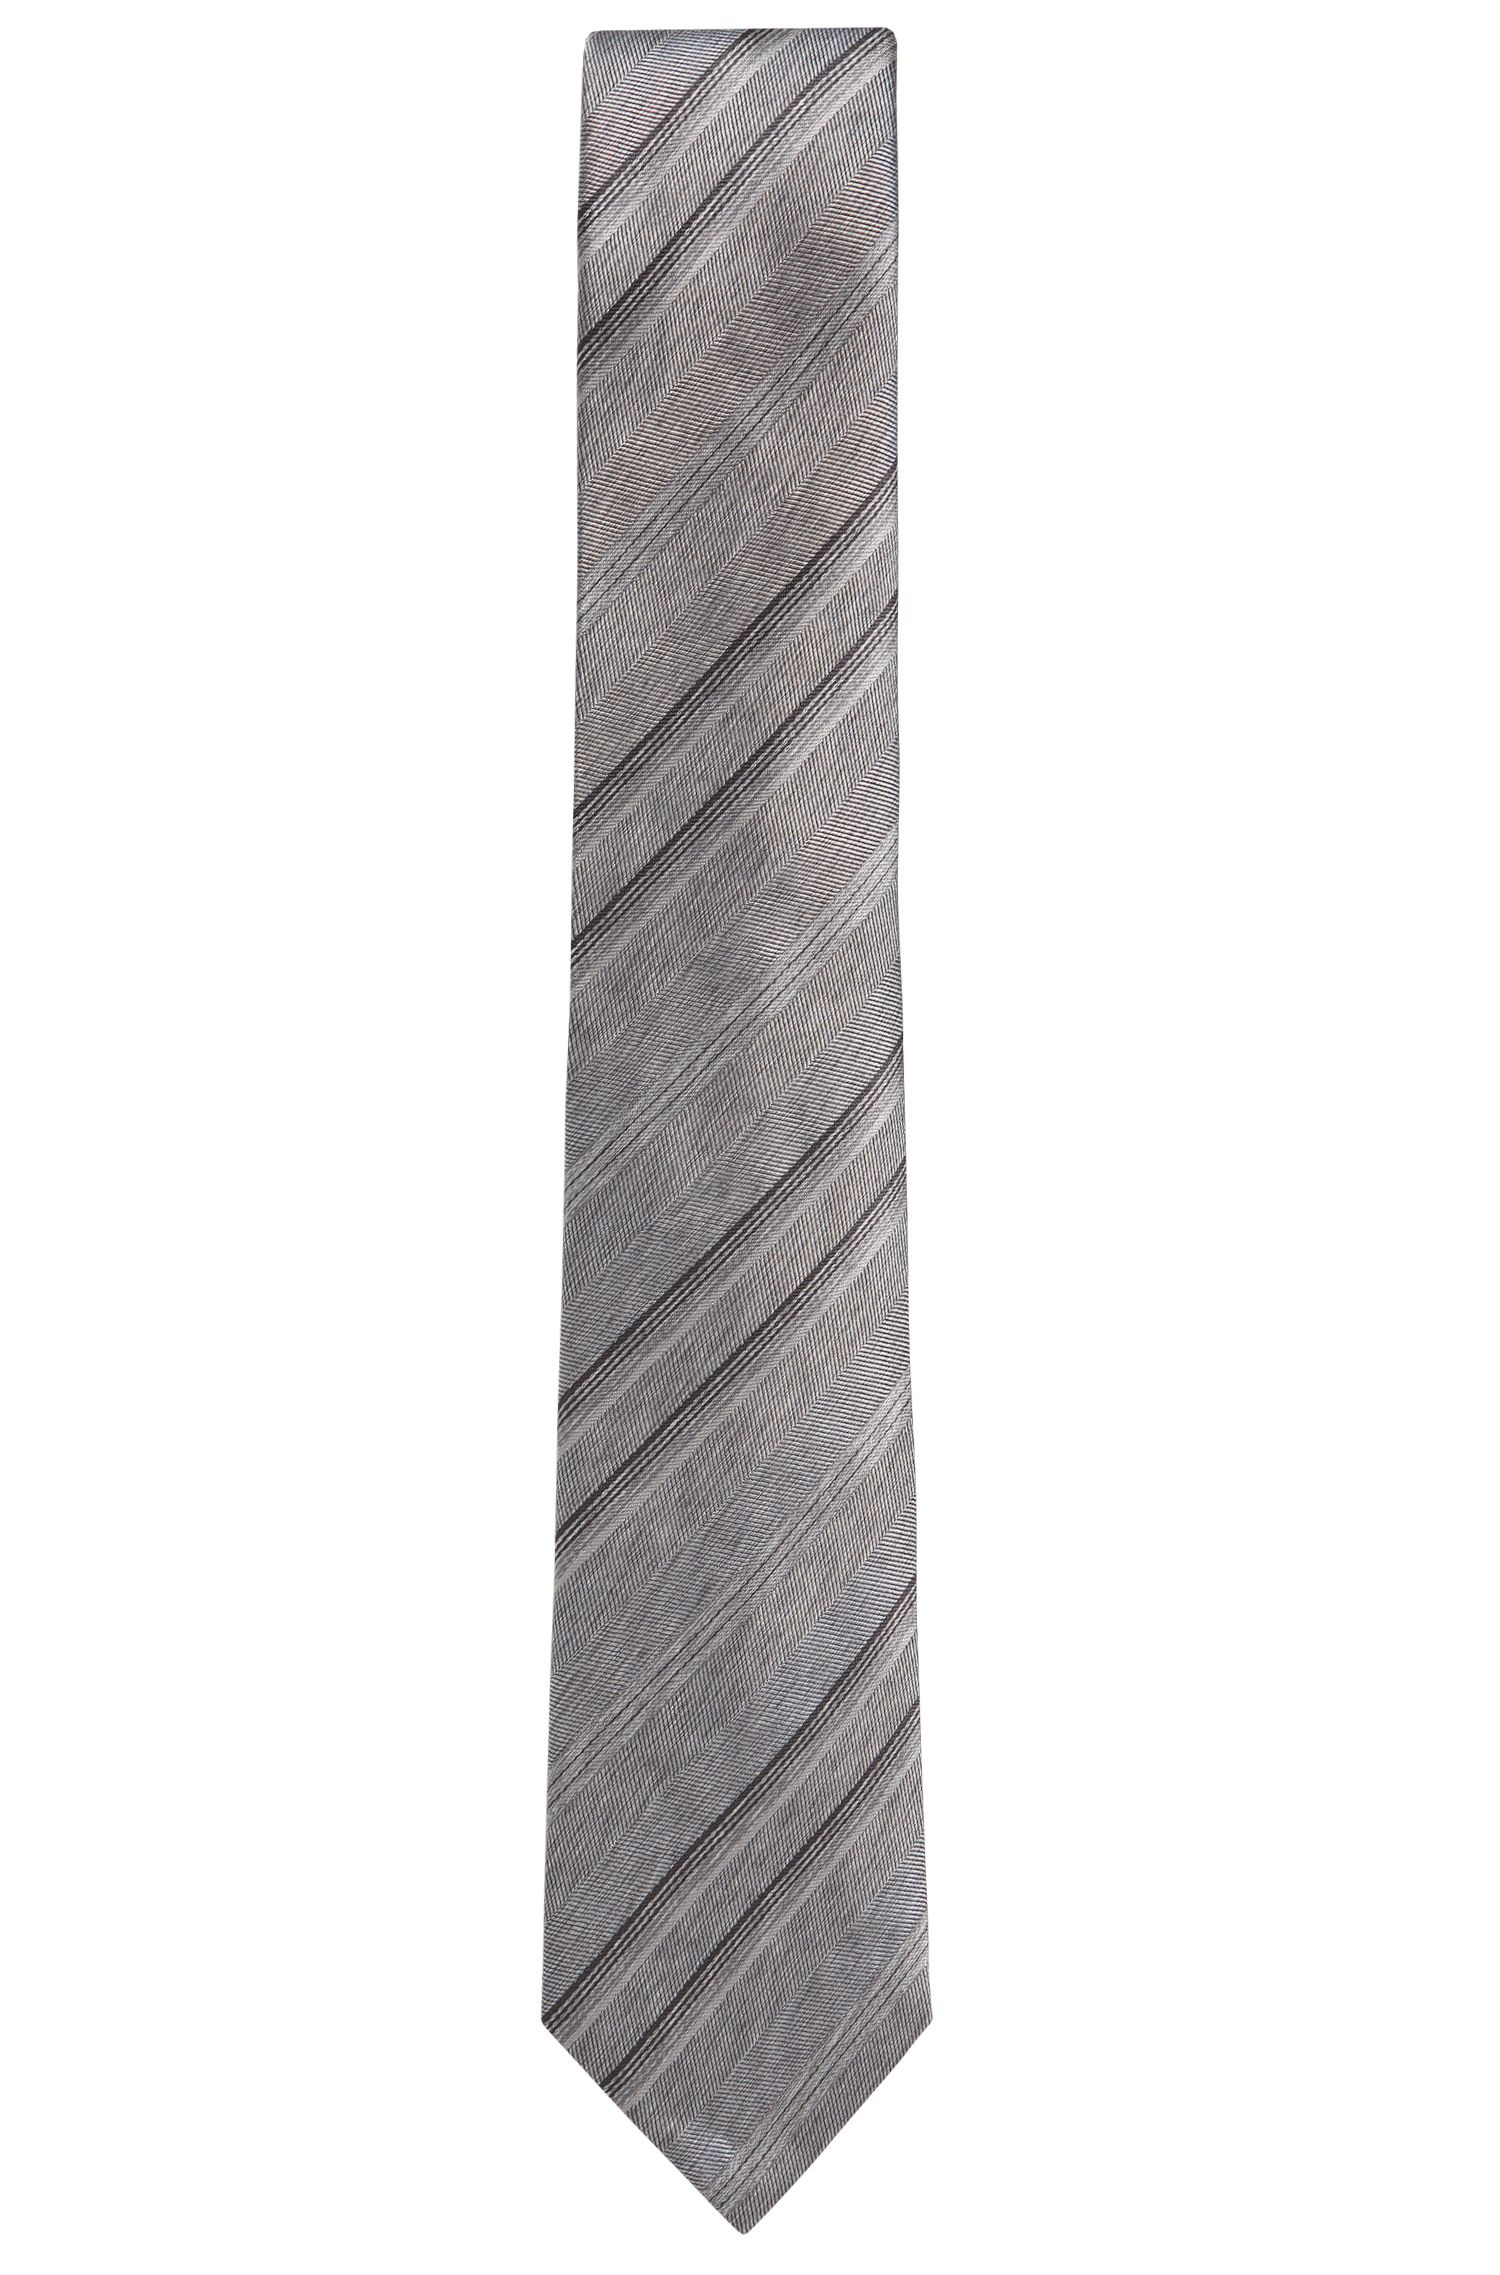 BOSS Tailored Striped Italian Silk Tie, Light Grey